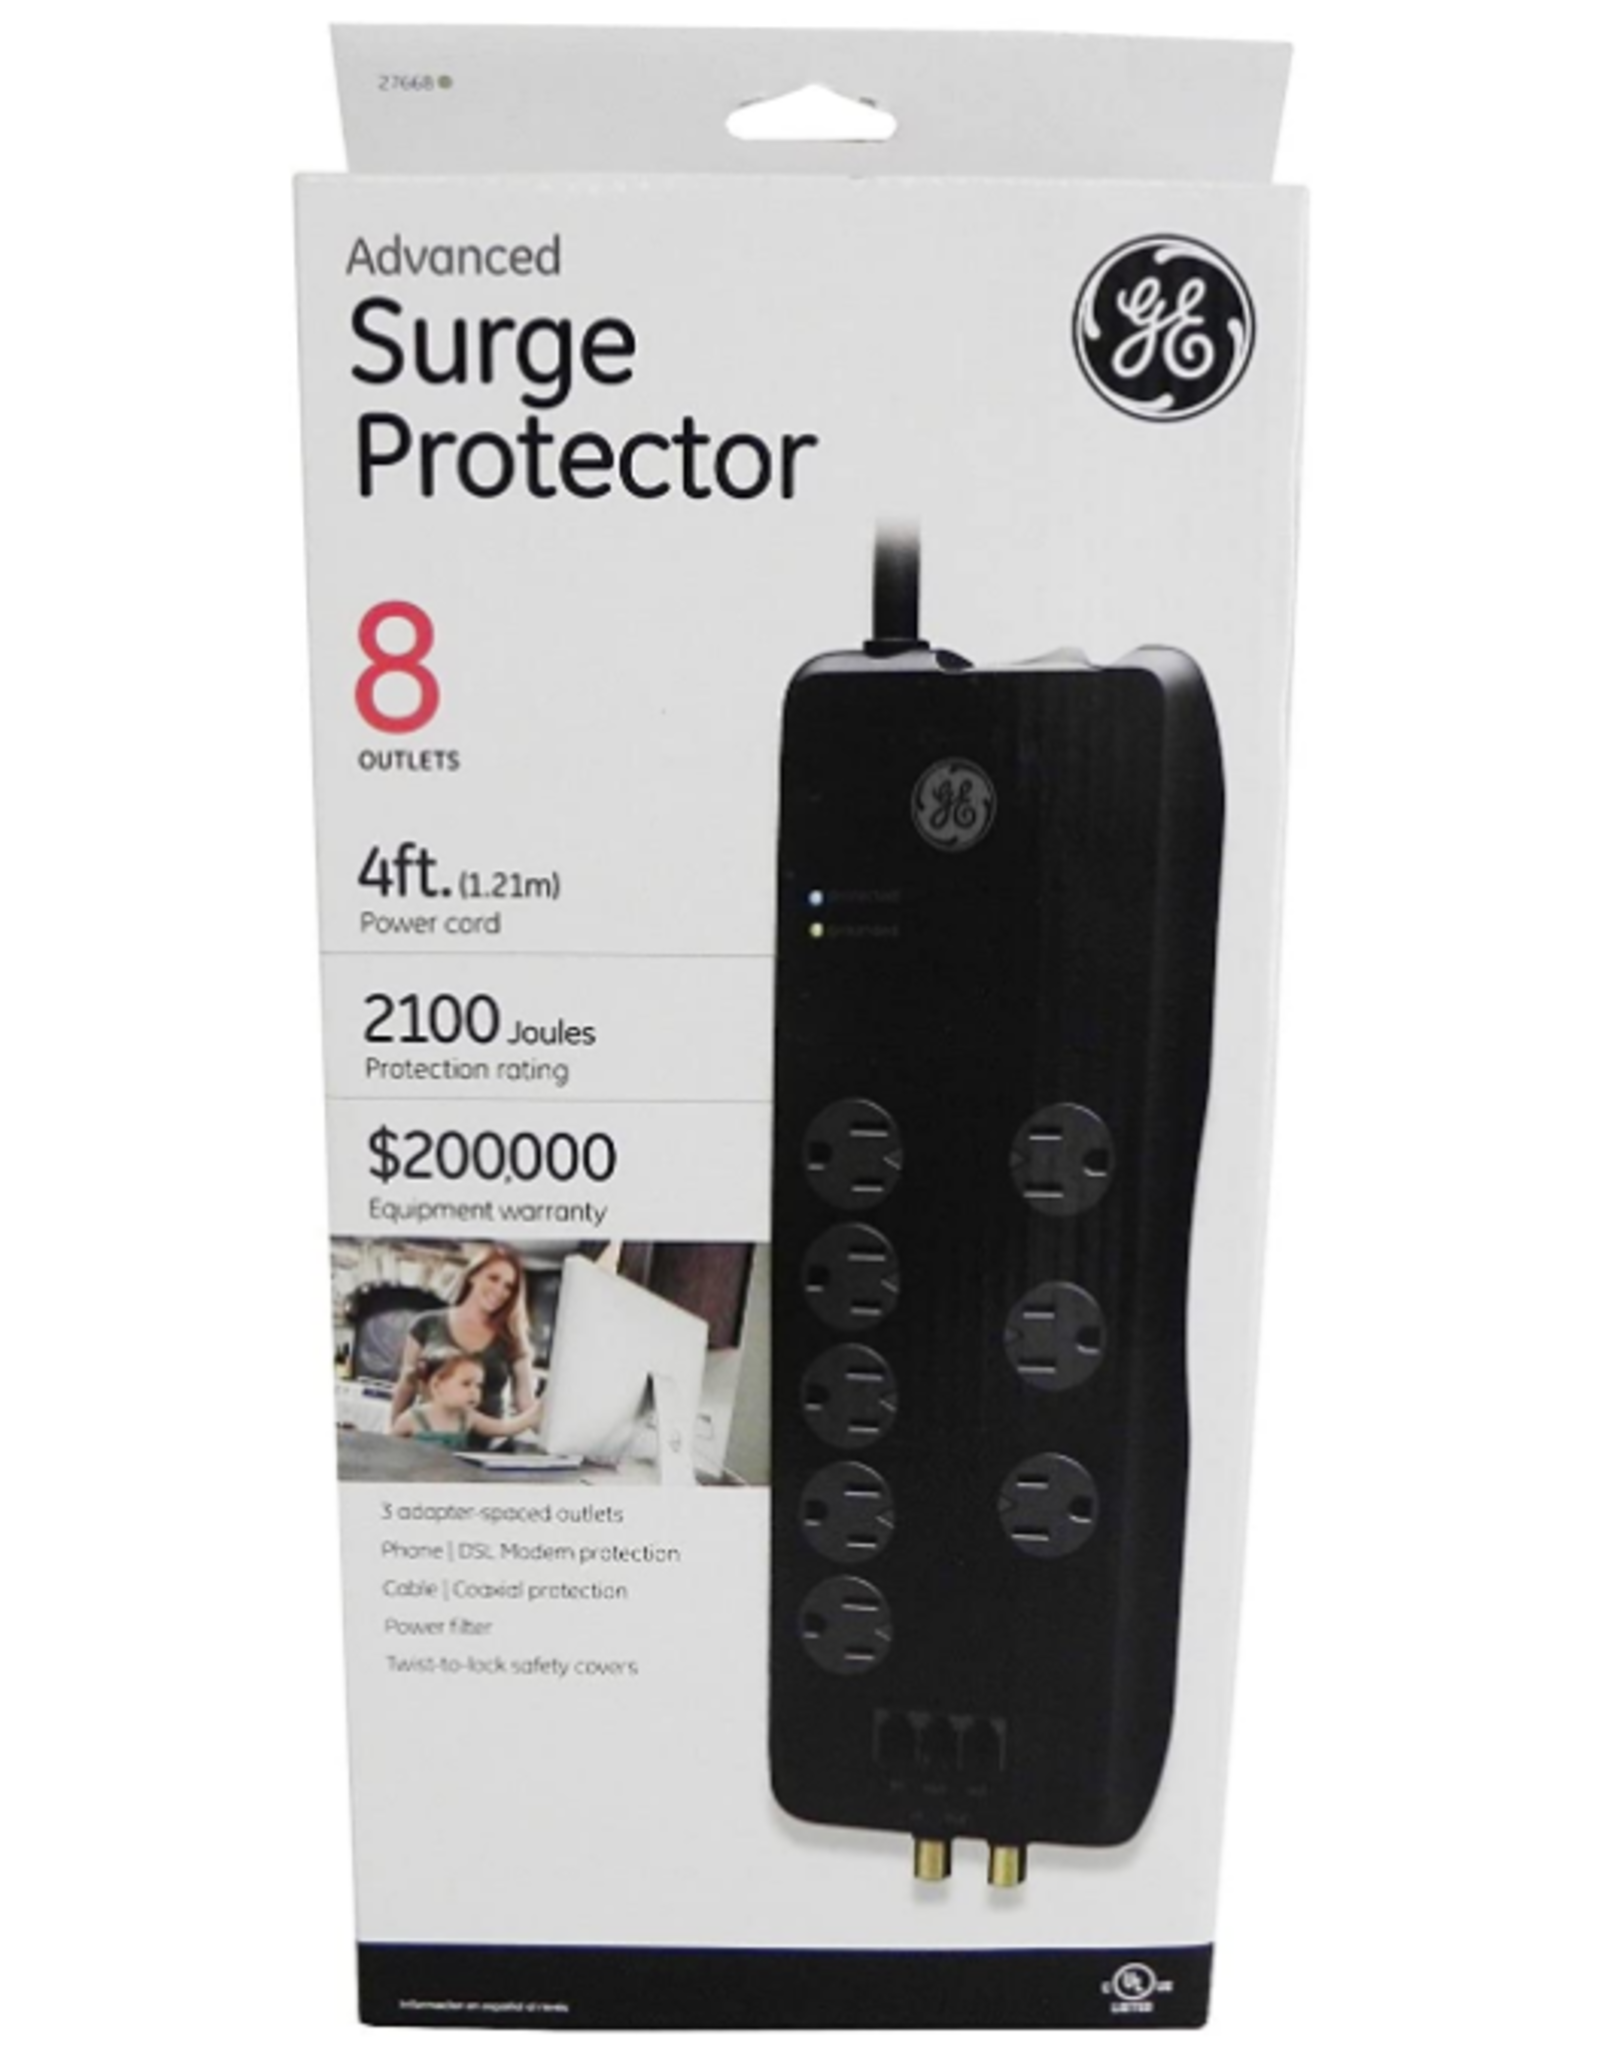 GE GE 8 Outlet Surge Protector, 4FT cord, 2100 Joules, Black